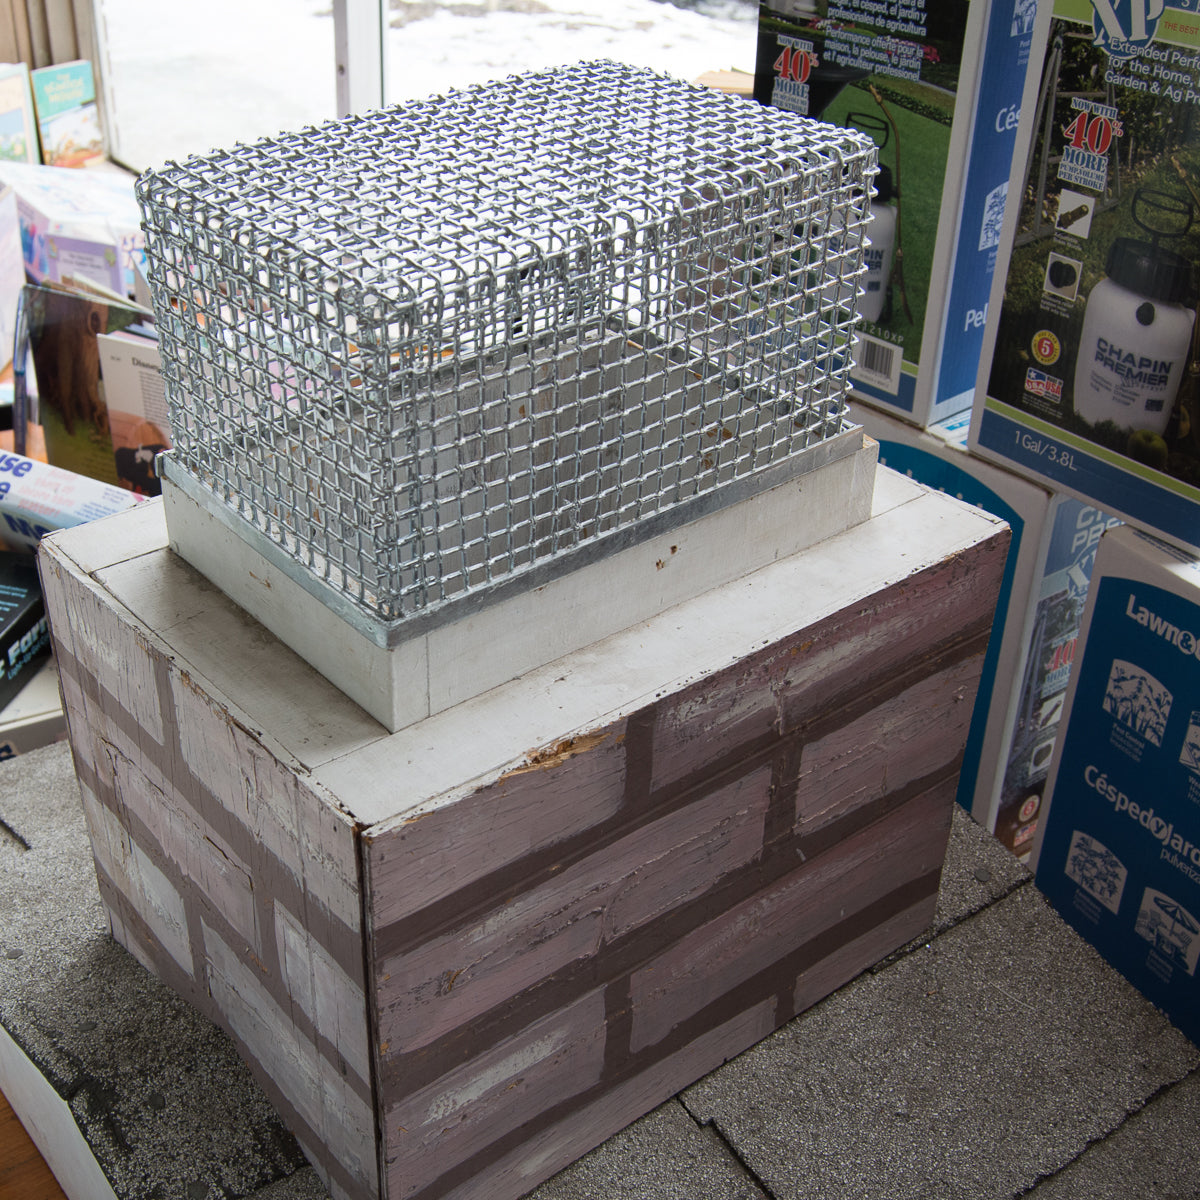 Chimney Screen in Store